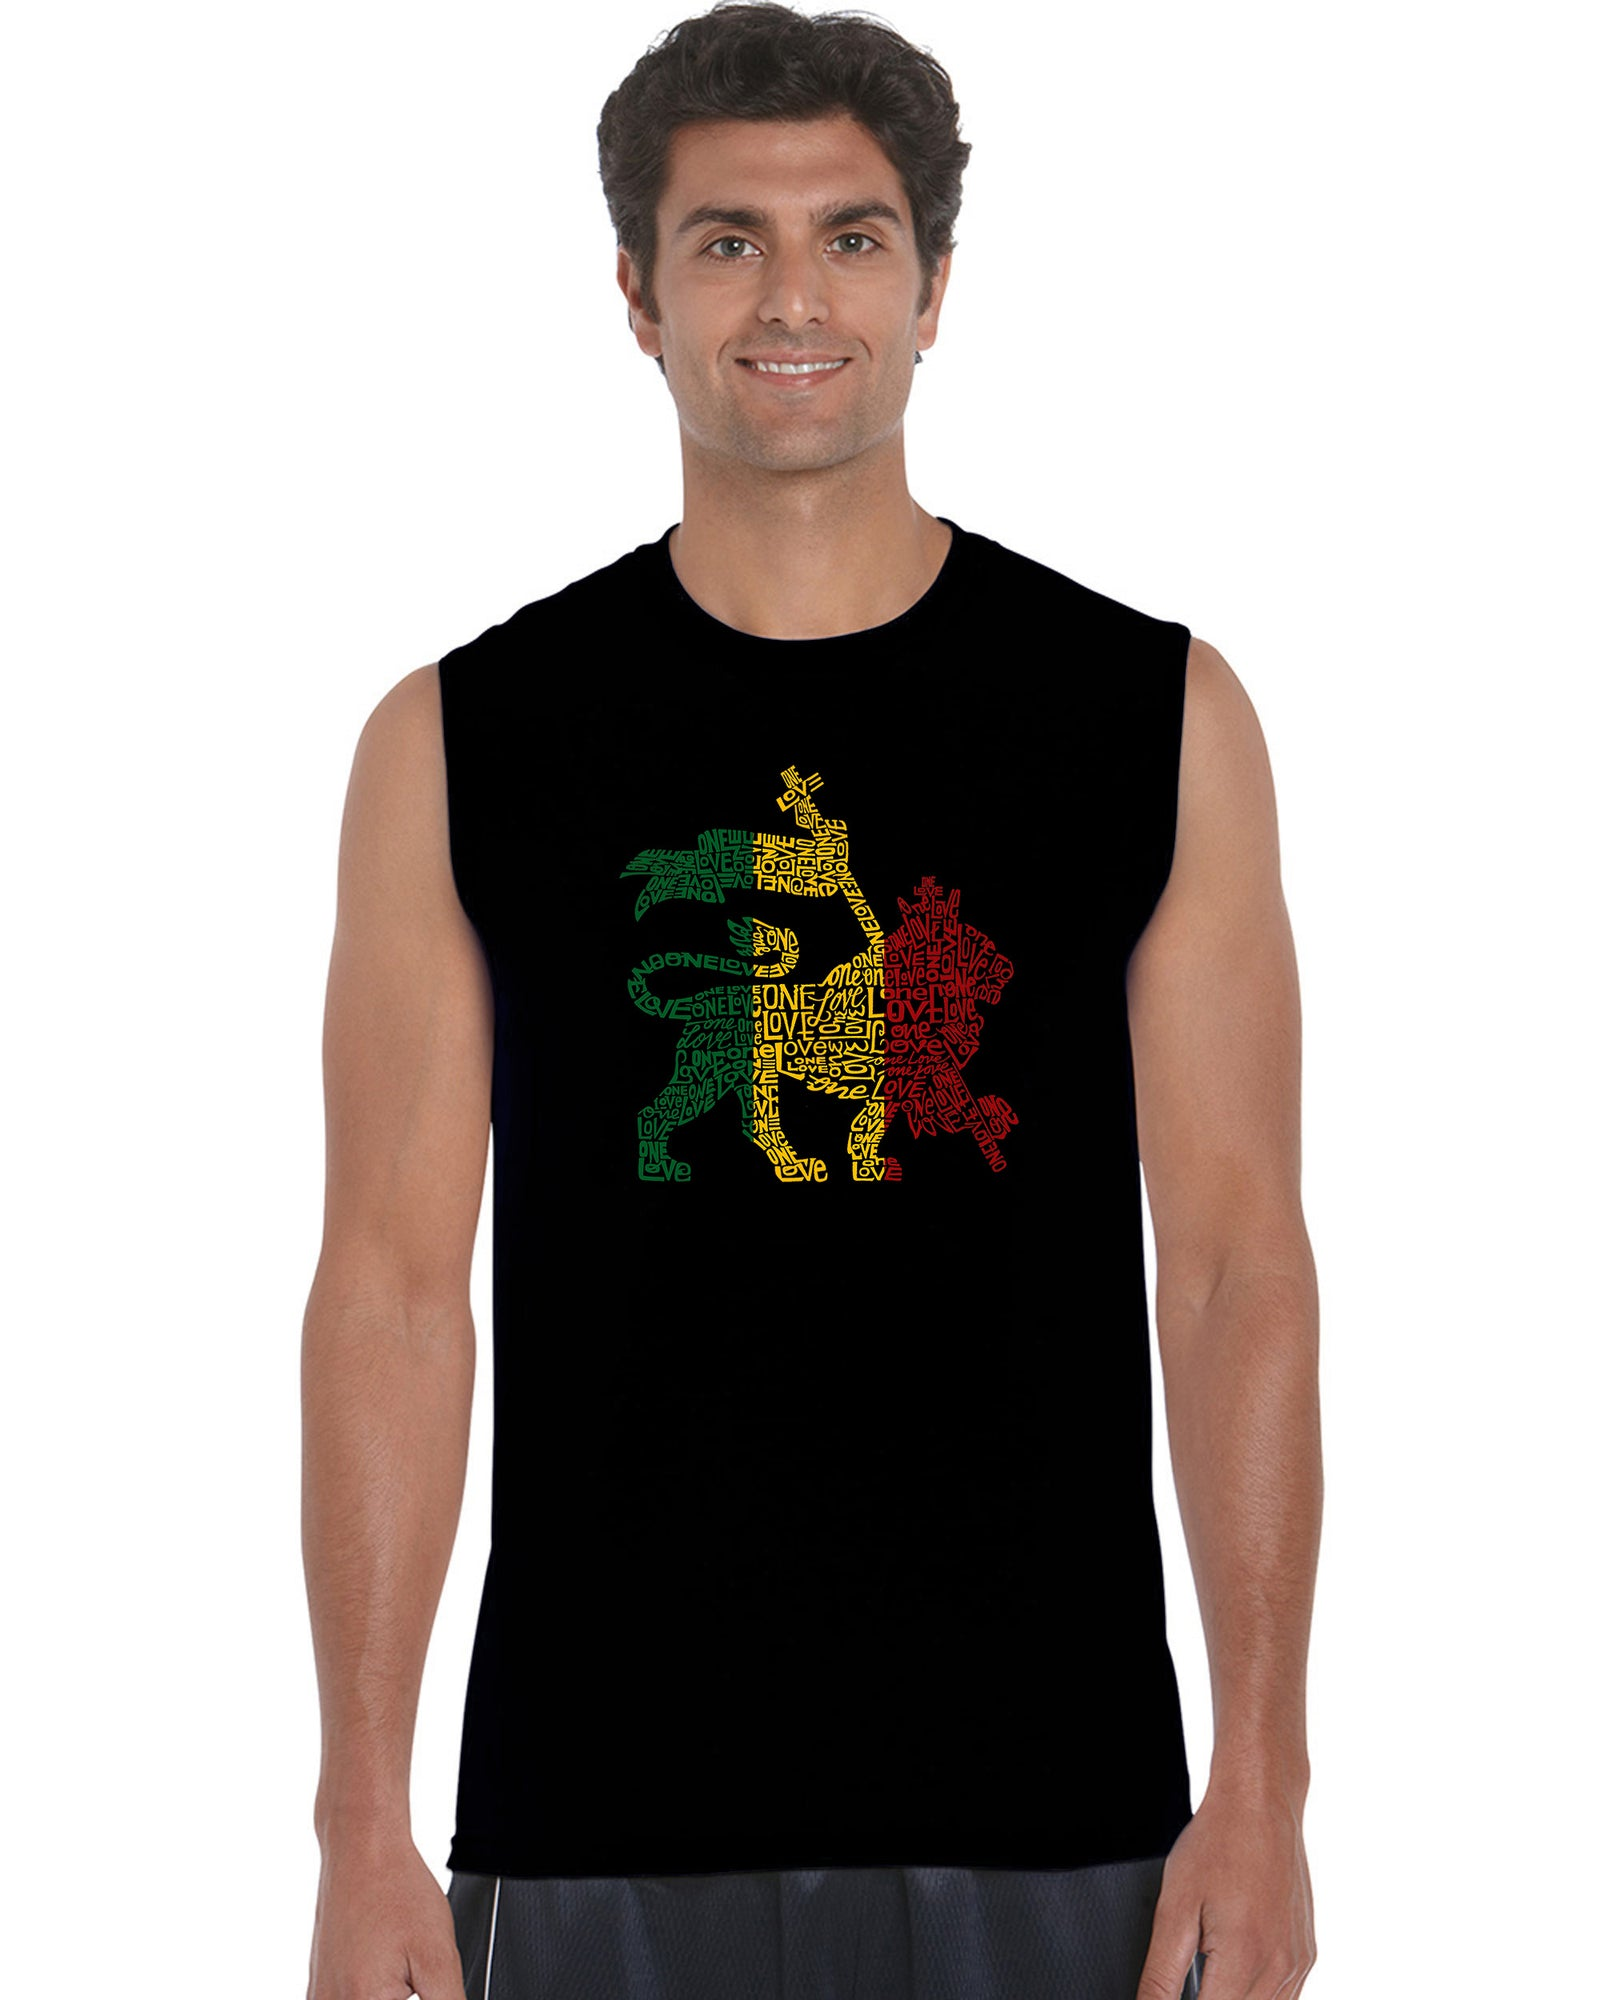 Men's Sleeveless T-shirt - Rasta Lion - One Love